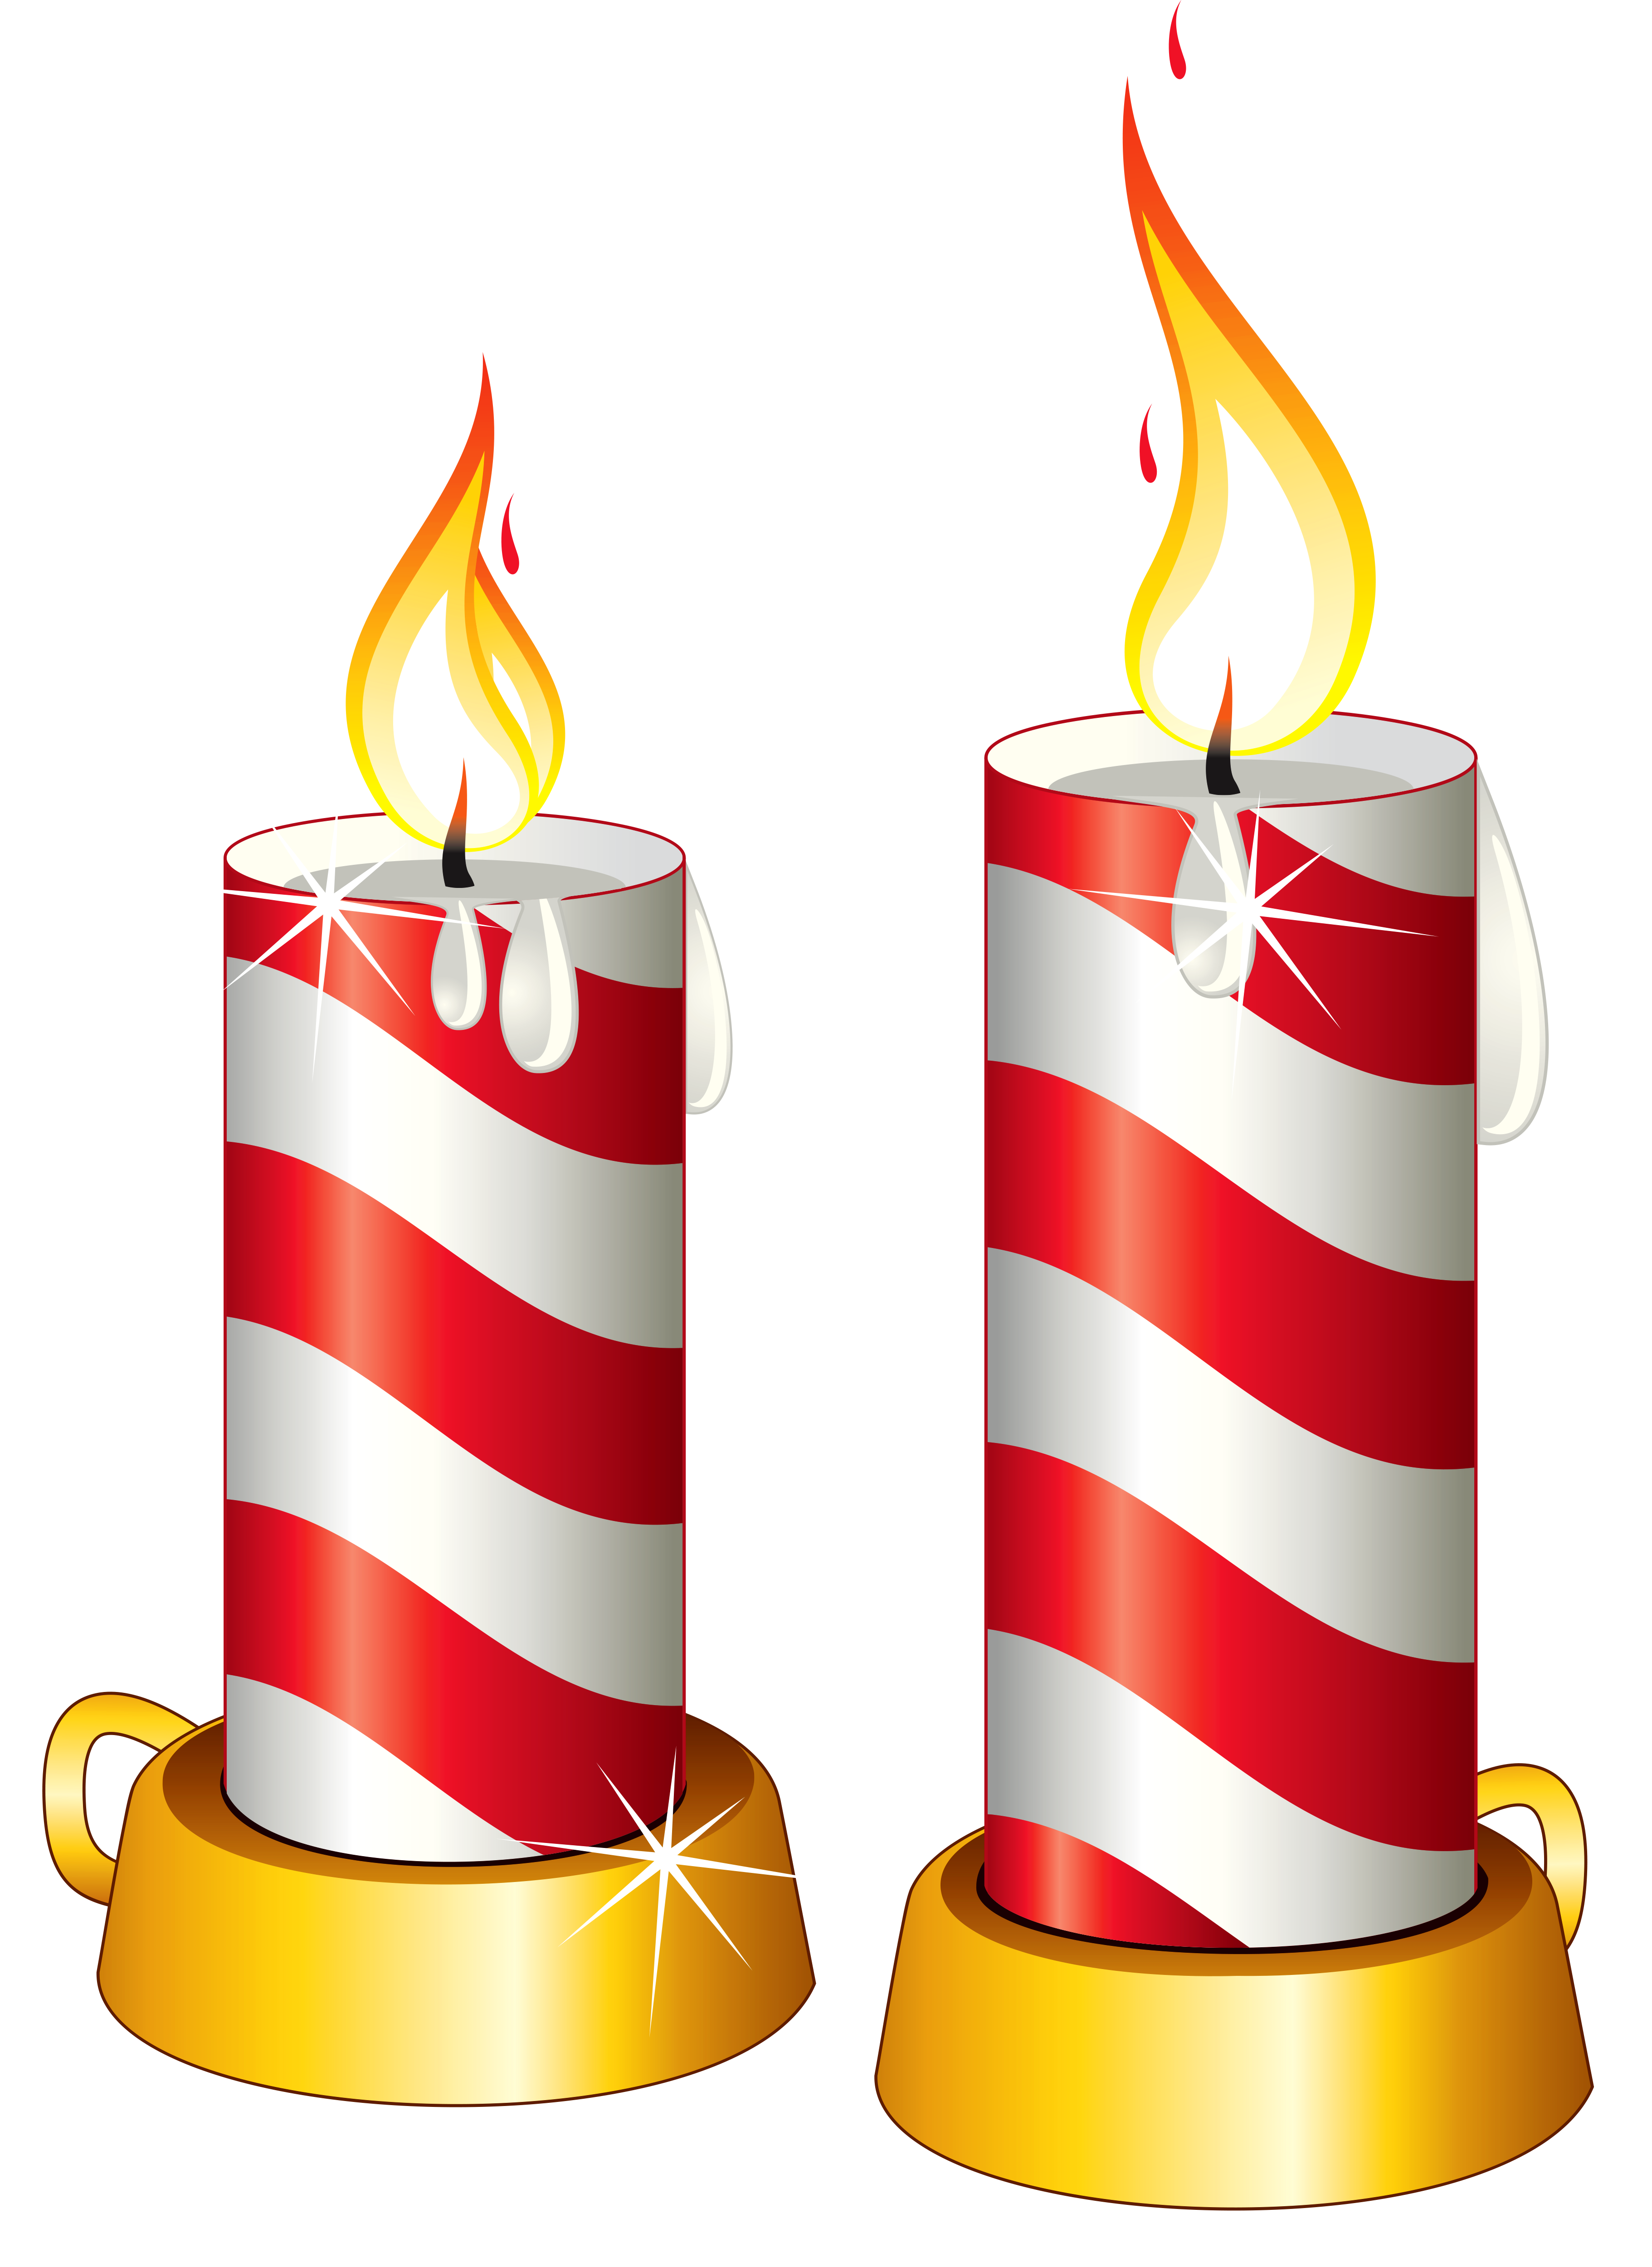 Candles clipart. Transparent christmas png gallery